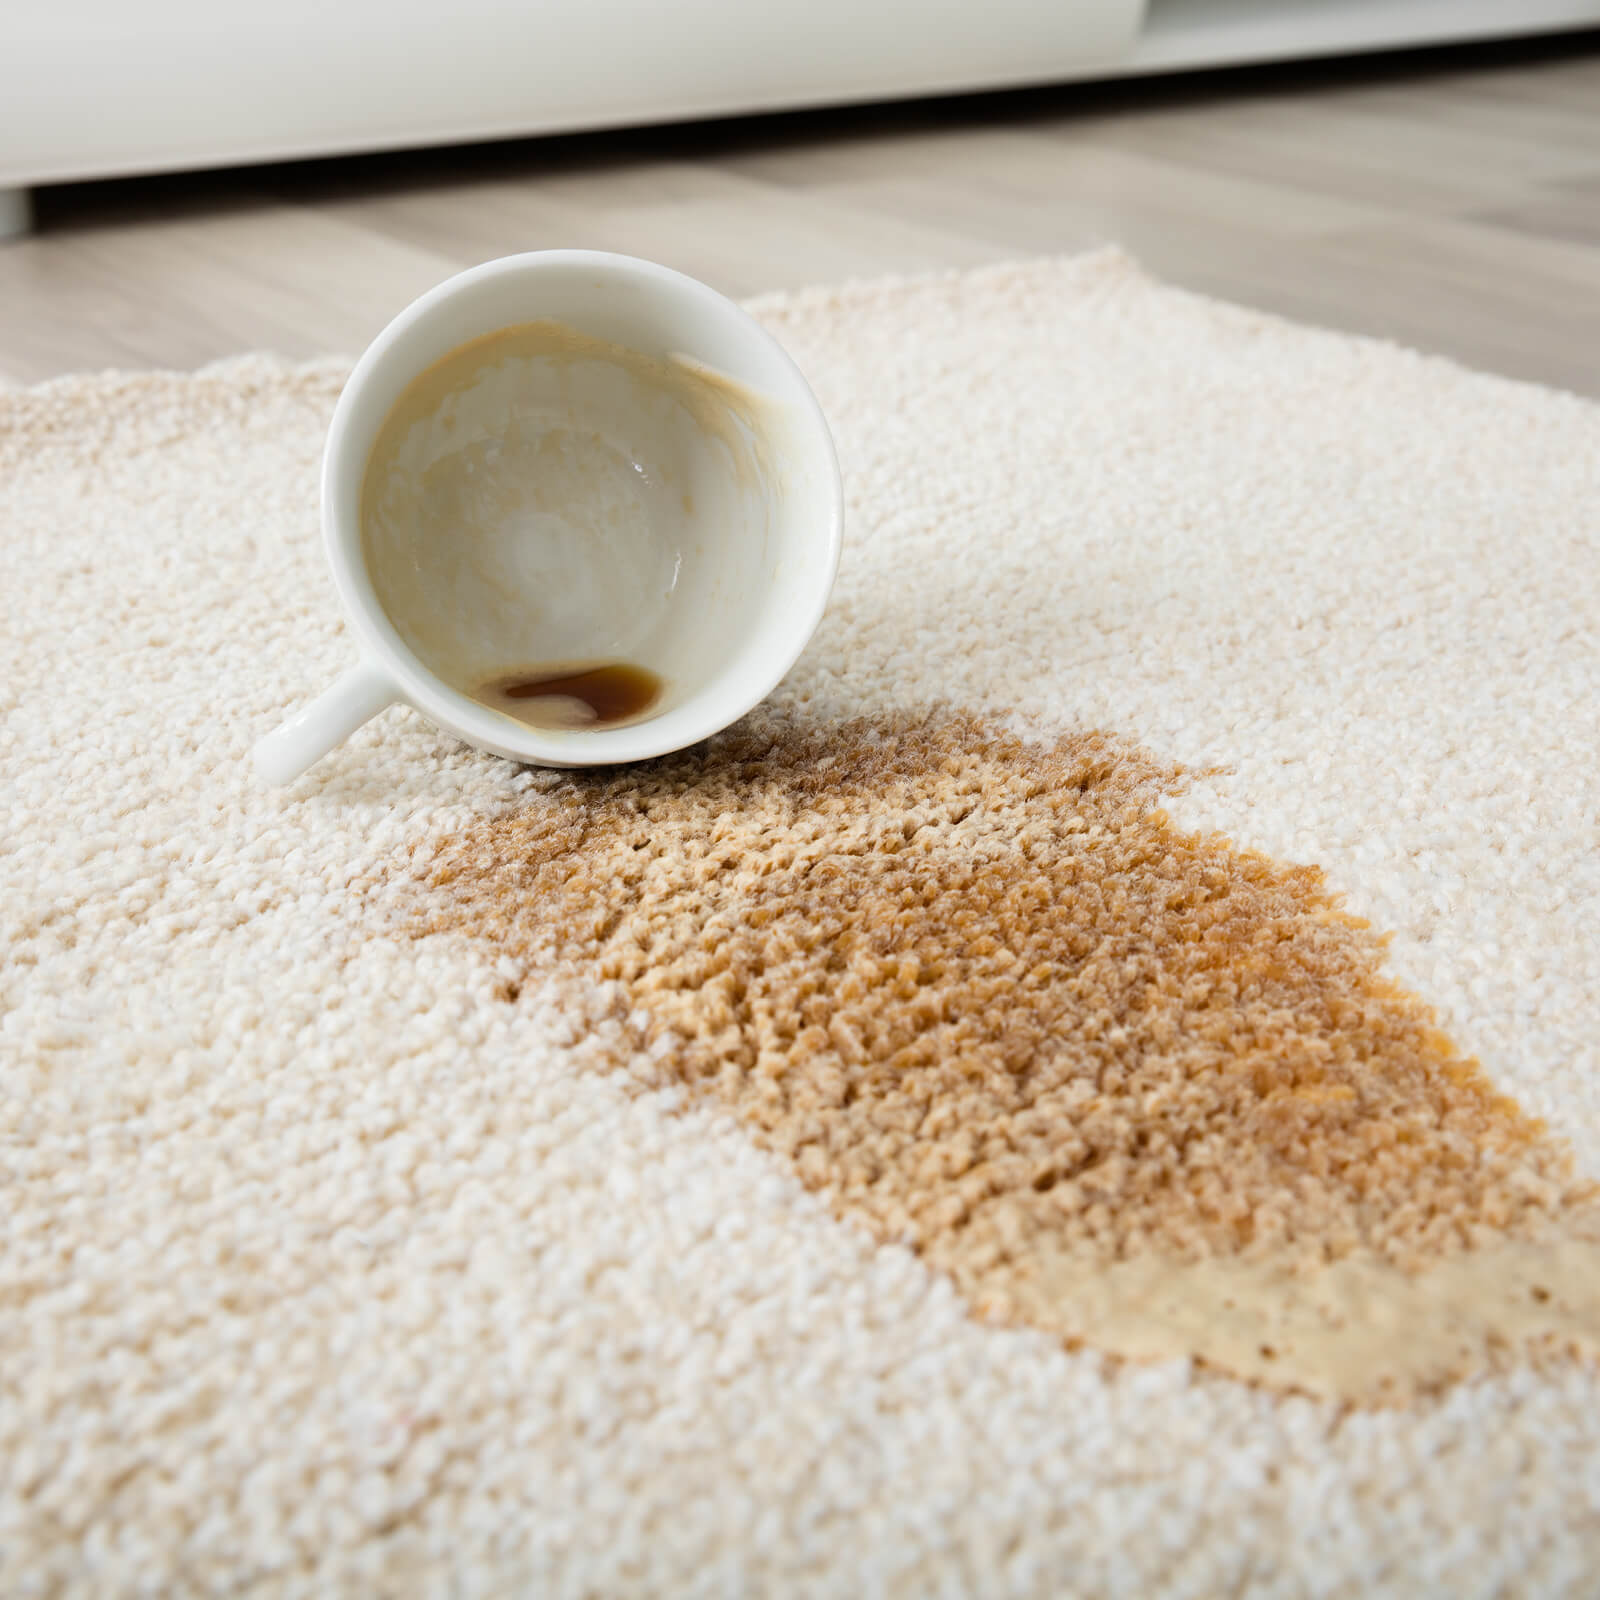 Coffee spill on area rug | Carpets by Direct